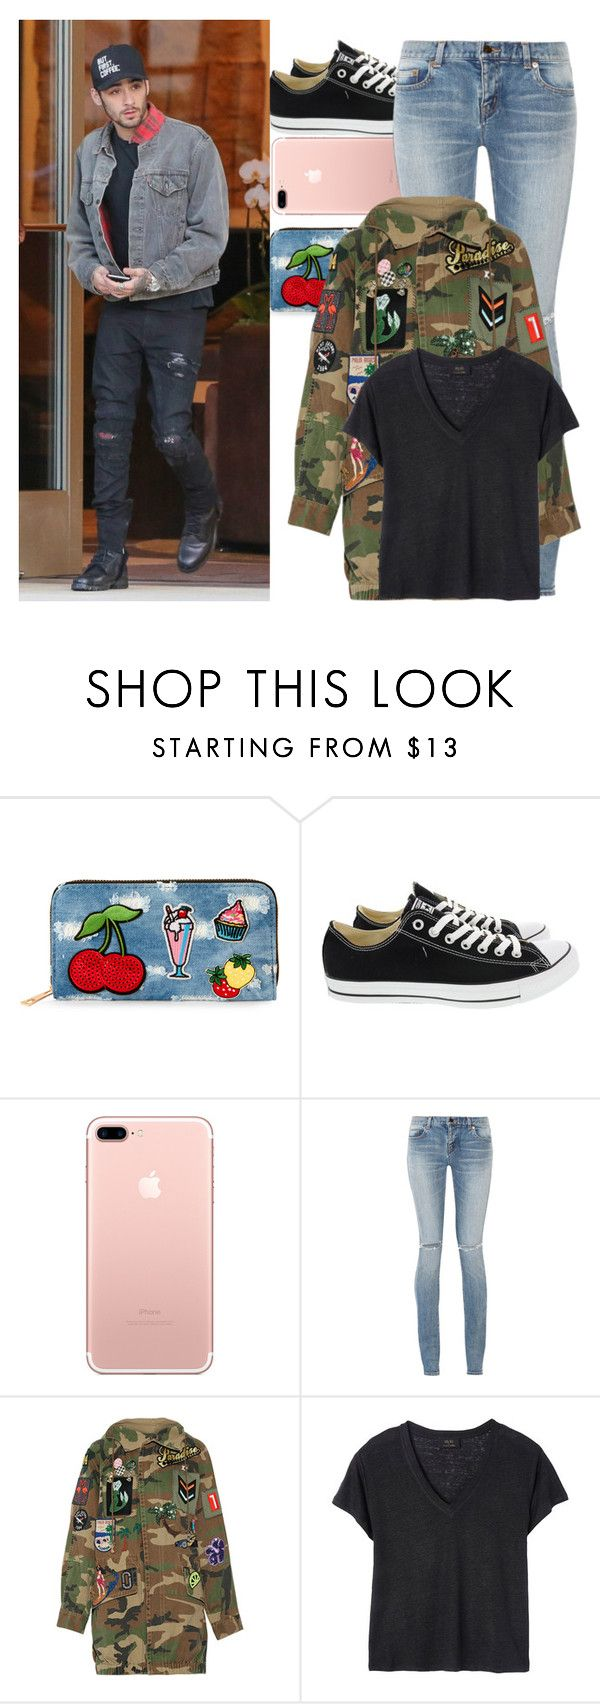 """With Zayn"" by angelbrubisc ❤ liked on Polyvore featuring Viola, Converse, Yves Saint Laurent, Marc Jacobs and Deby Debo"